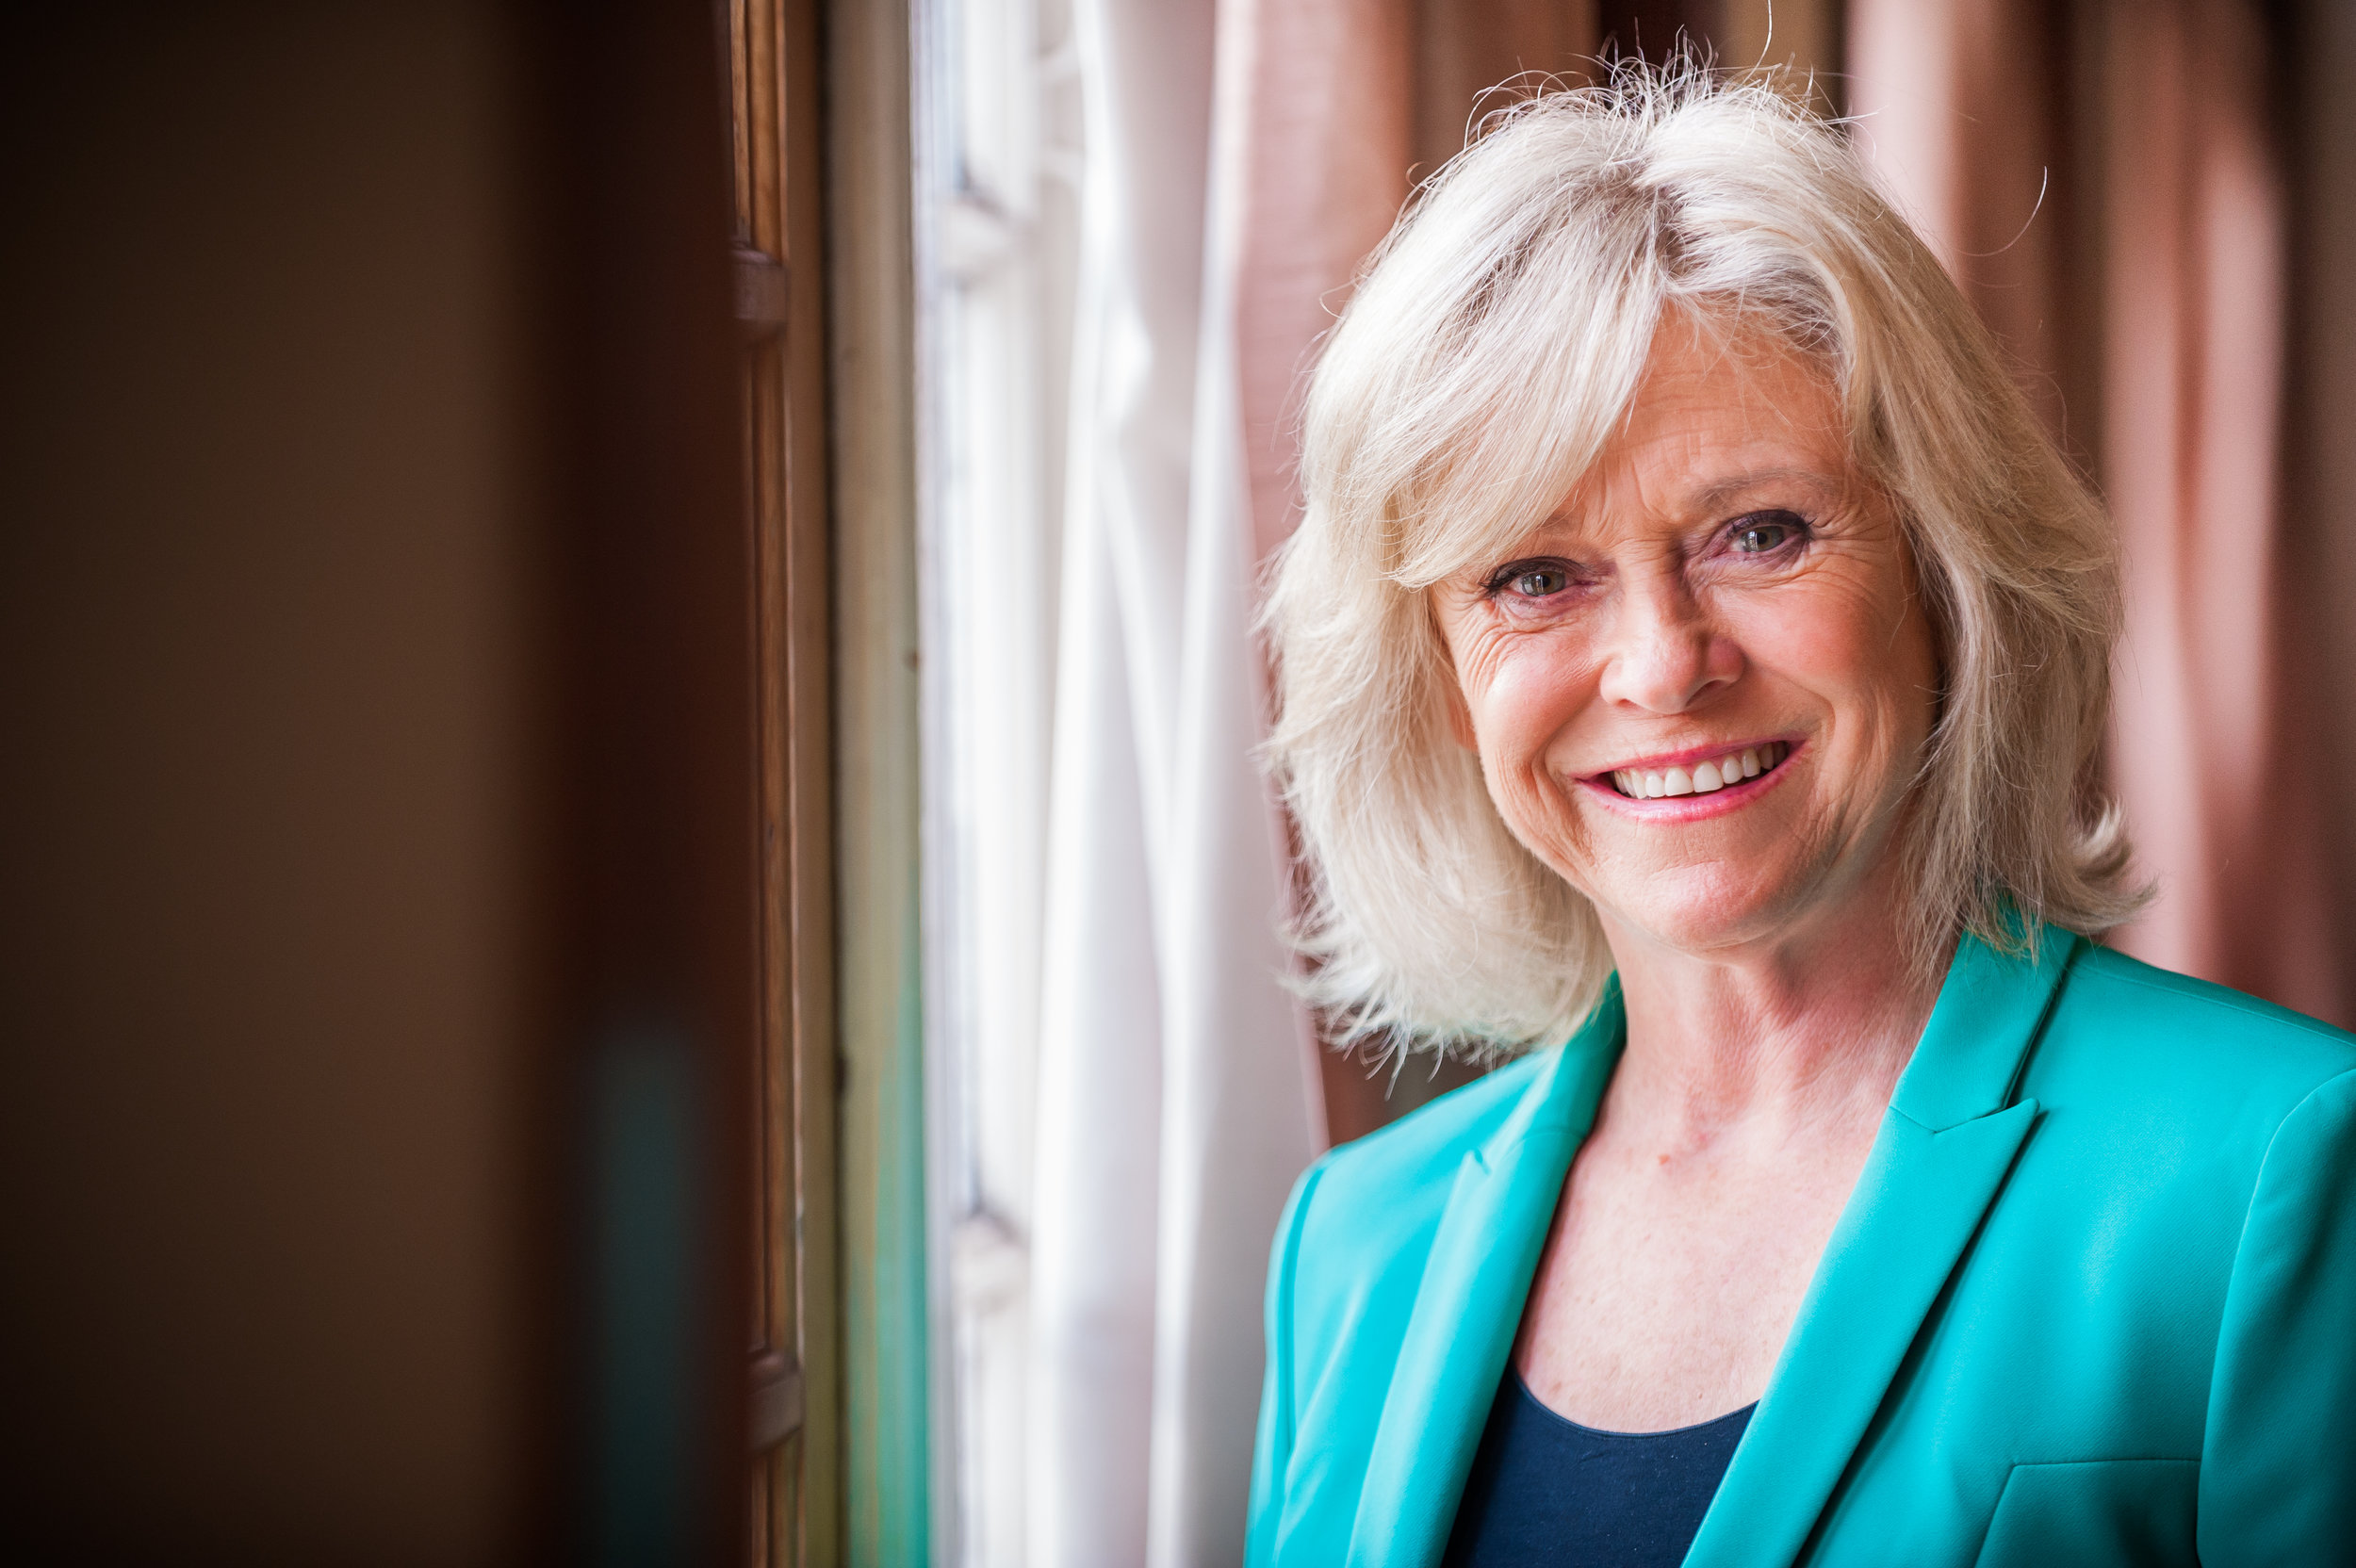 Sue Barker - TV Presenter and former professional tennis player